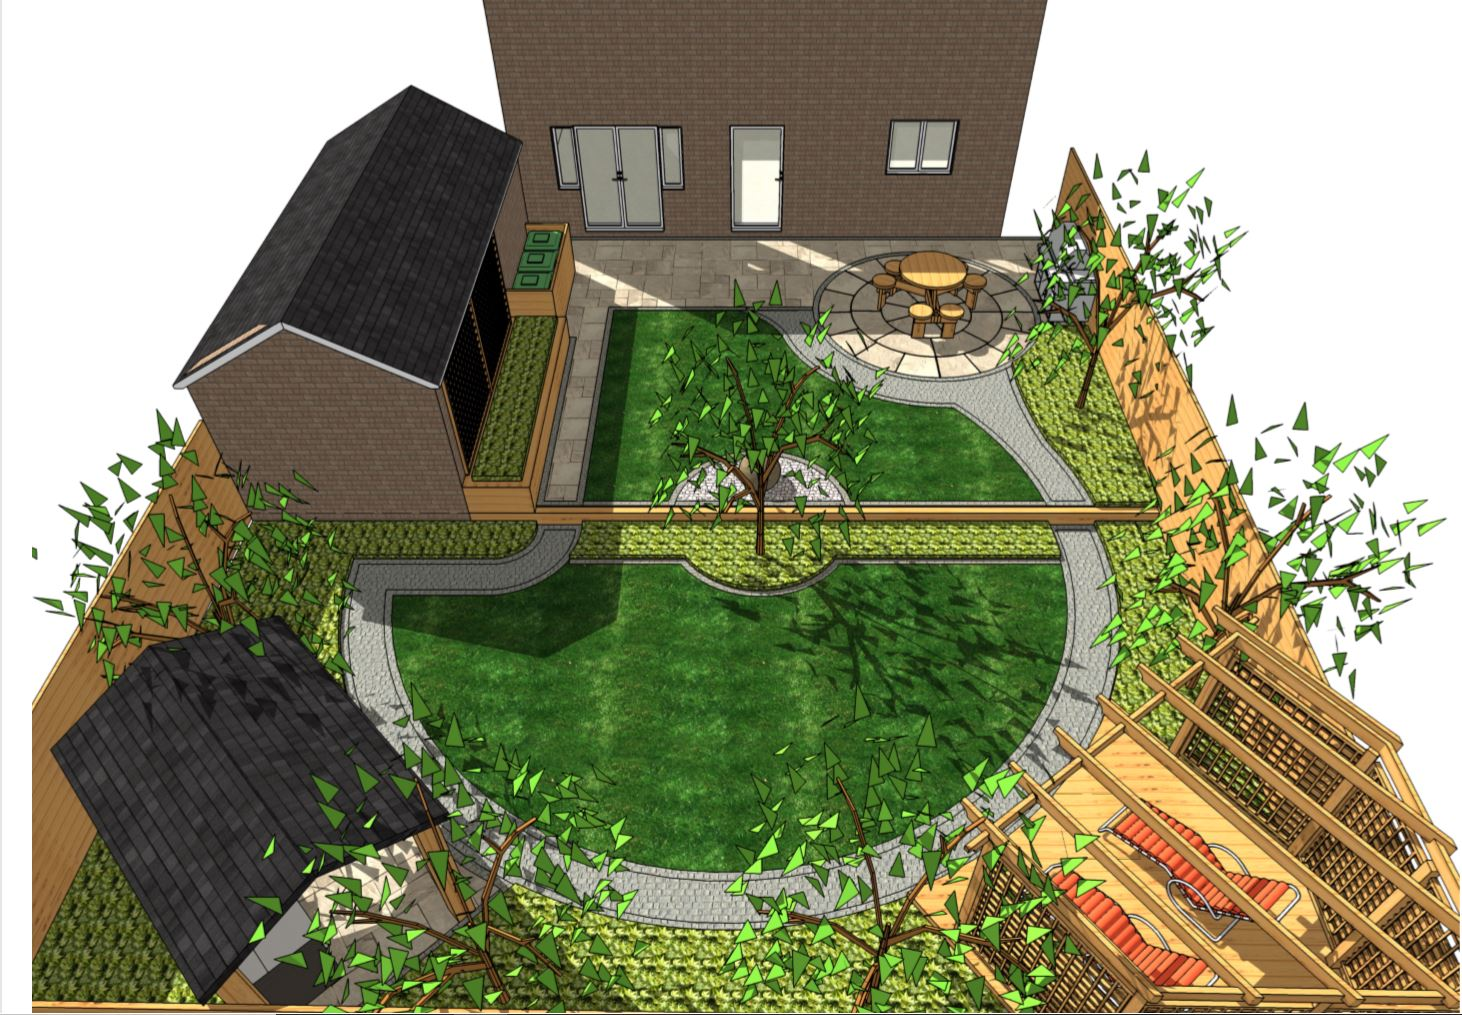 1, Concept plan overview for a rear garden in Pontefract